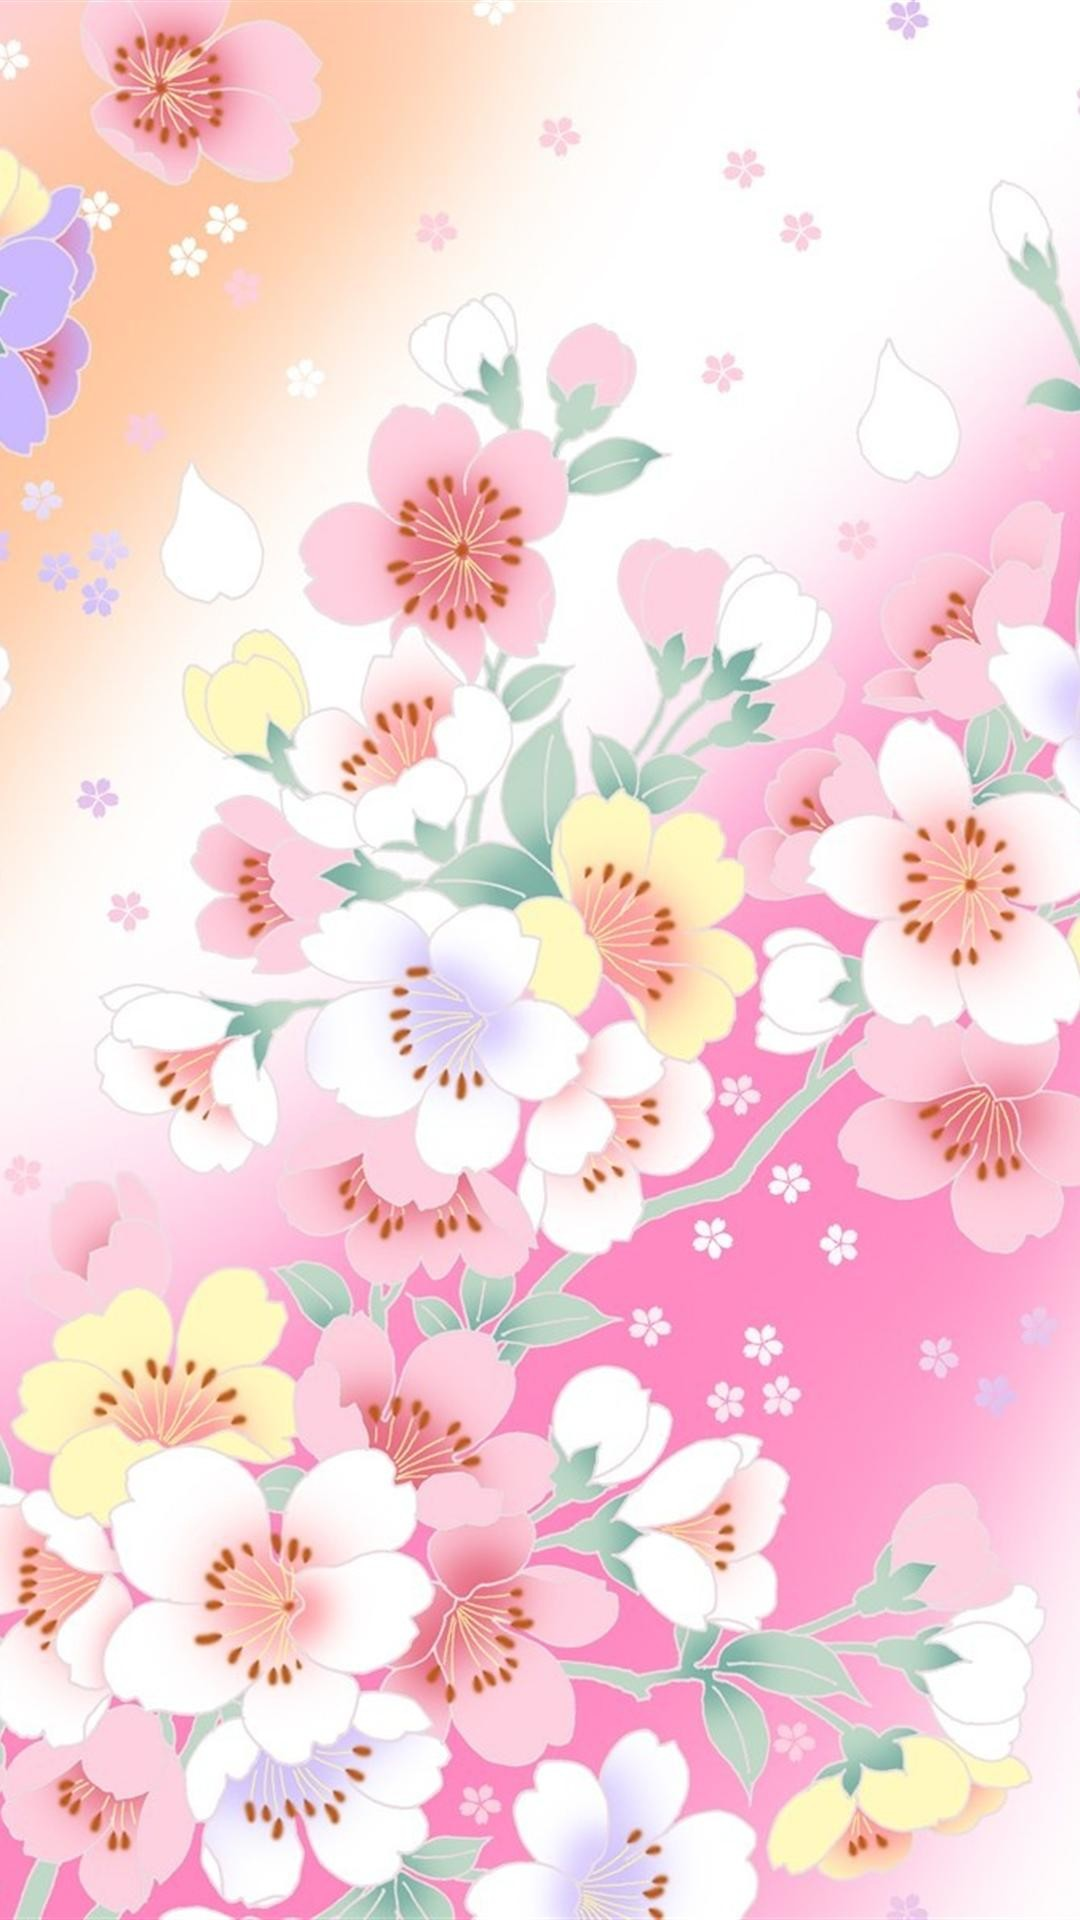 Cute Japanese Cartoon Characters Wallpaper Precious Moments Backgrounds 32 Images